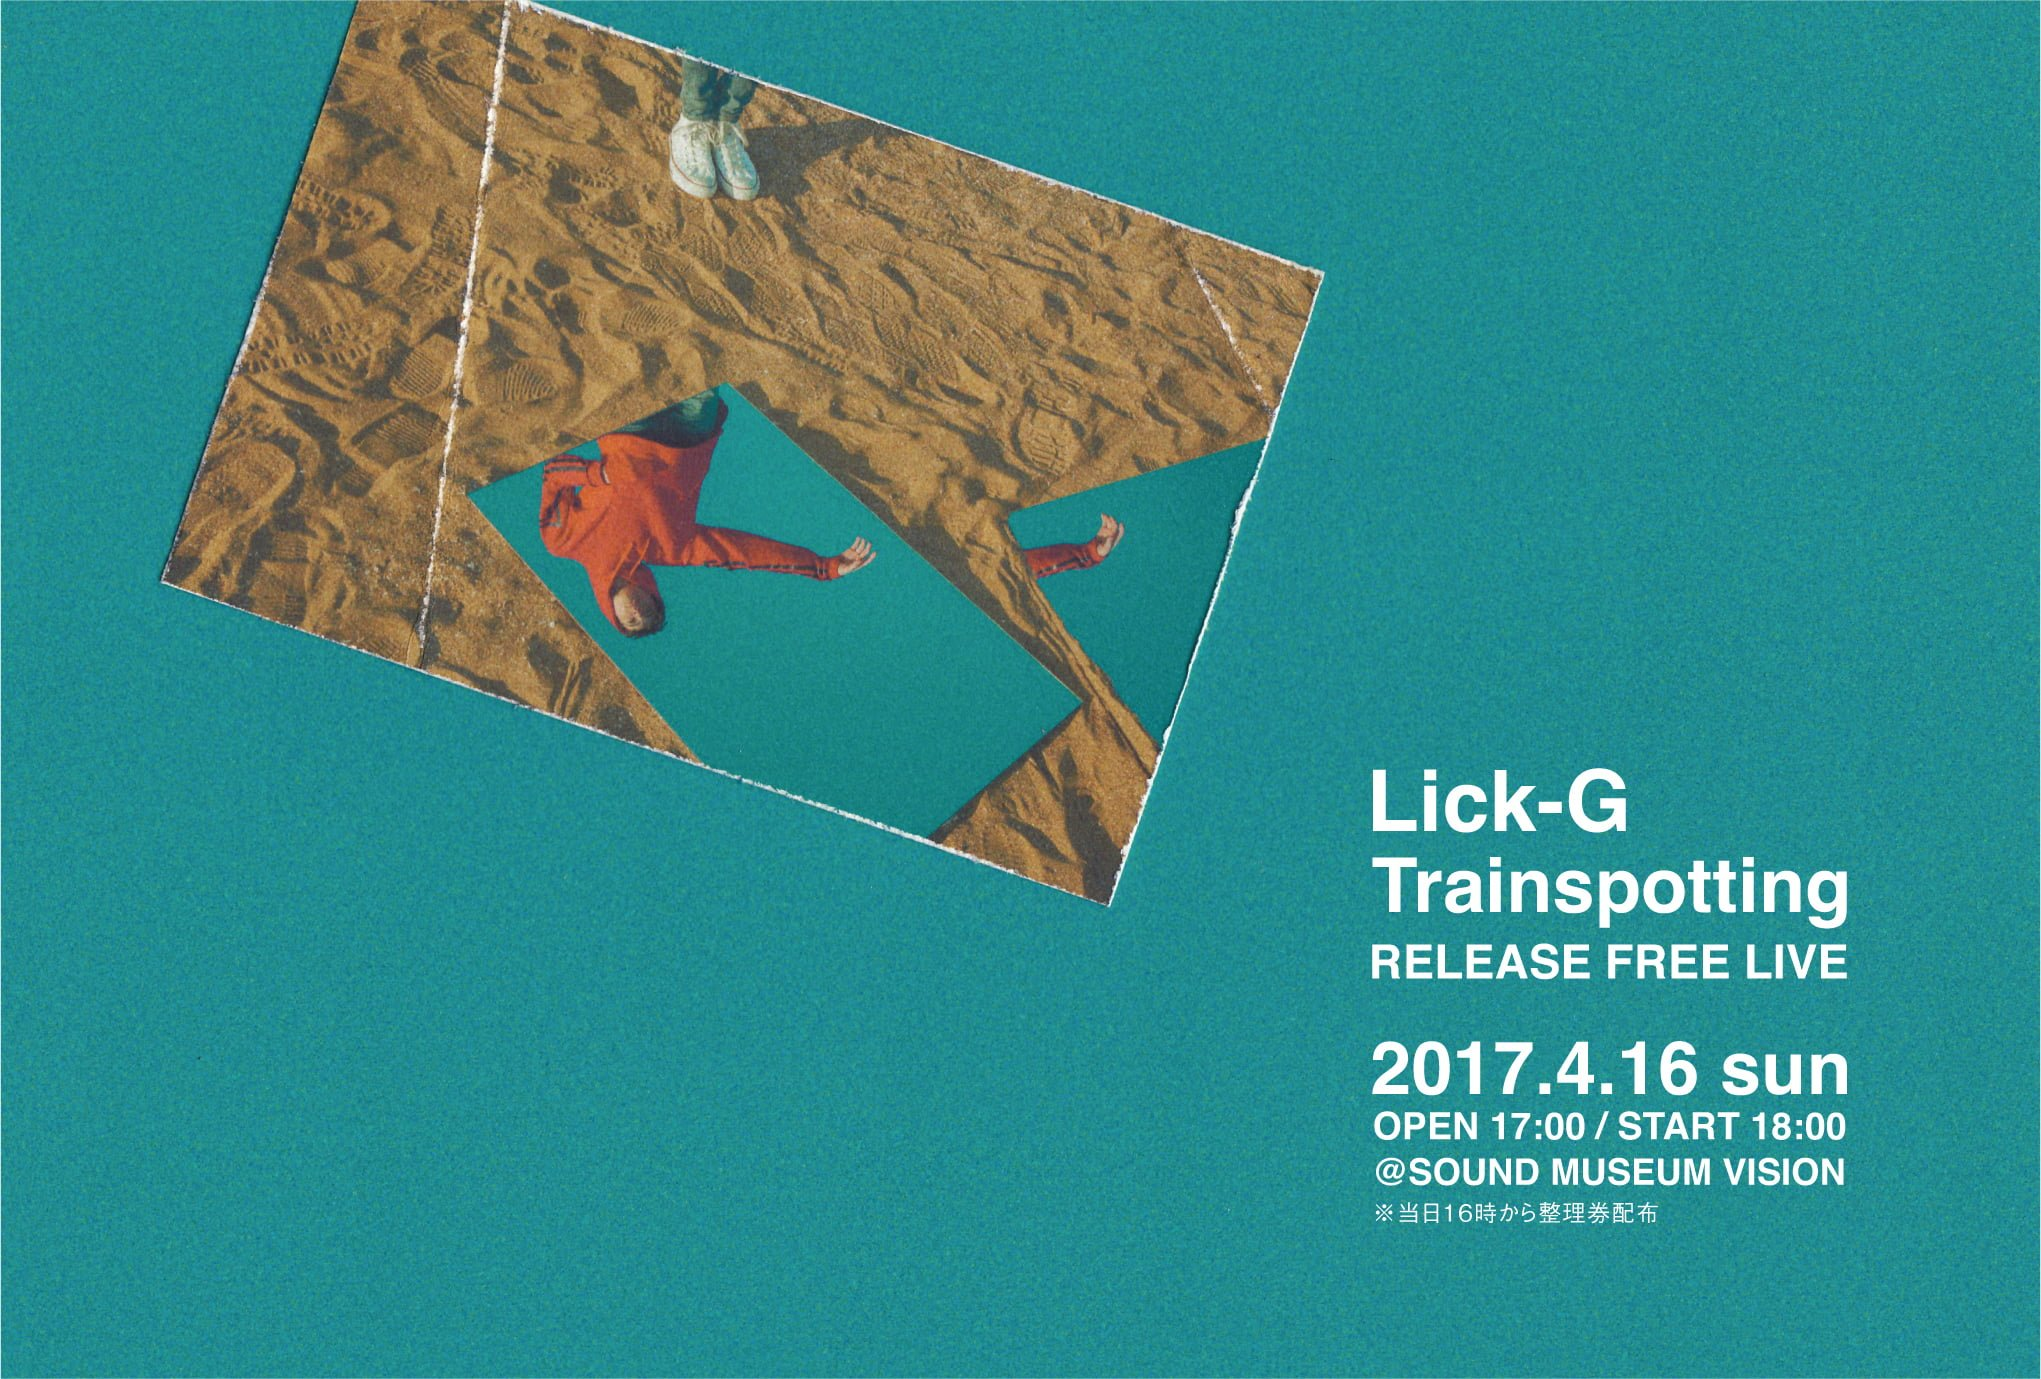 Lick-G -Trainspotting- RELEASE FREE LIVE